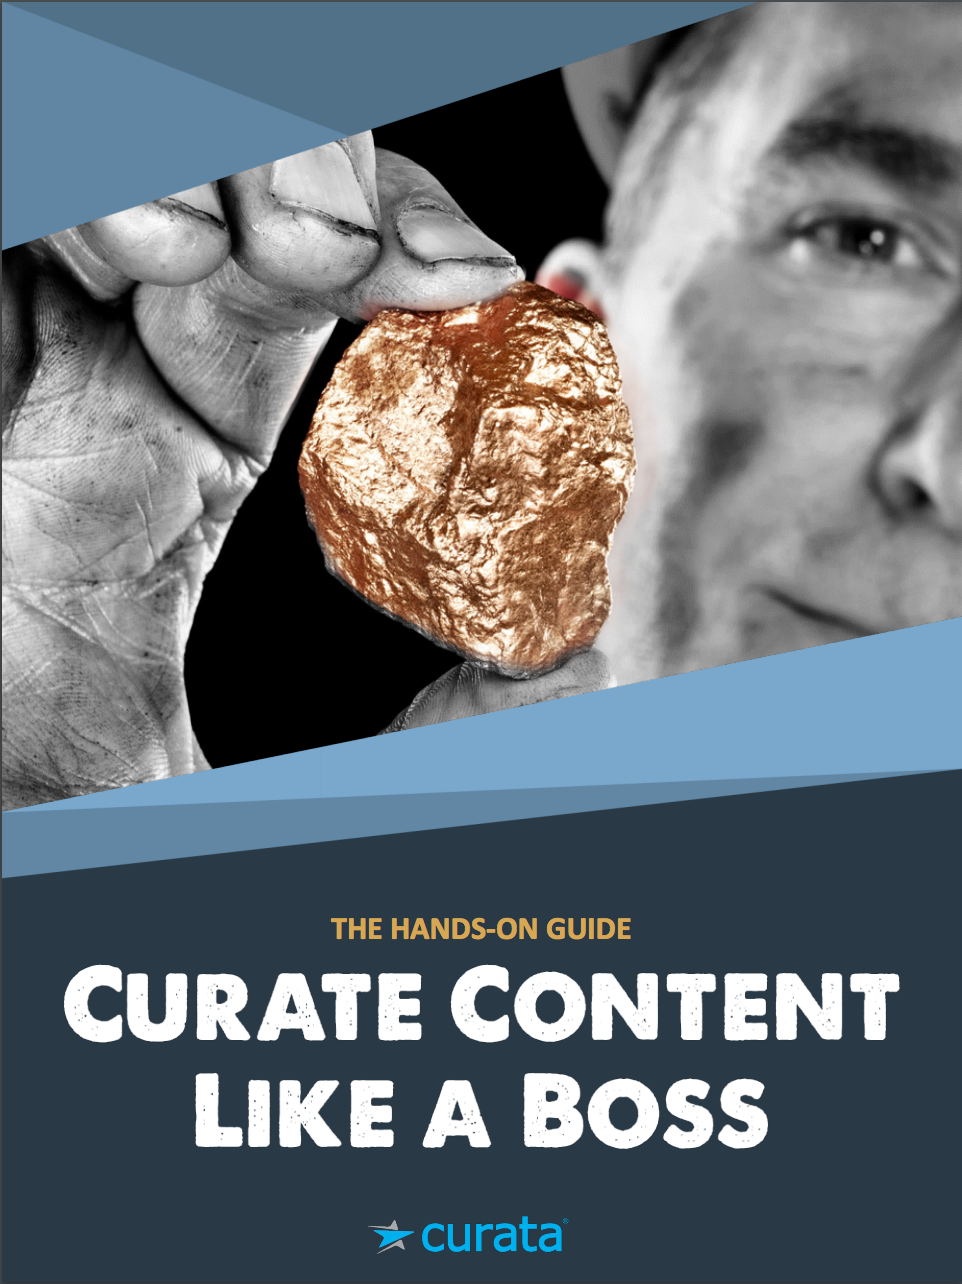 The Hands-on Guide: Curate Content Like a Boss